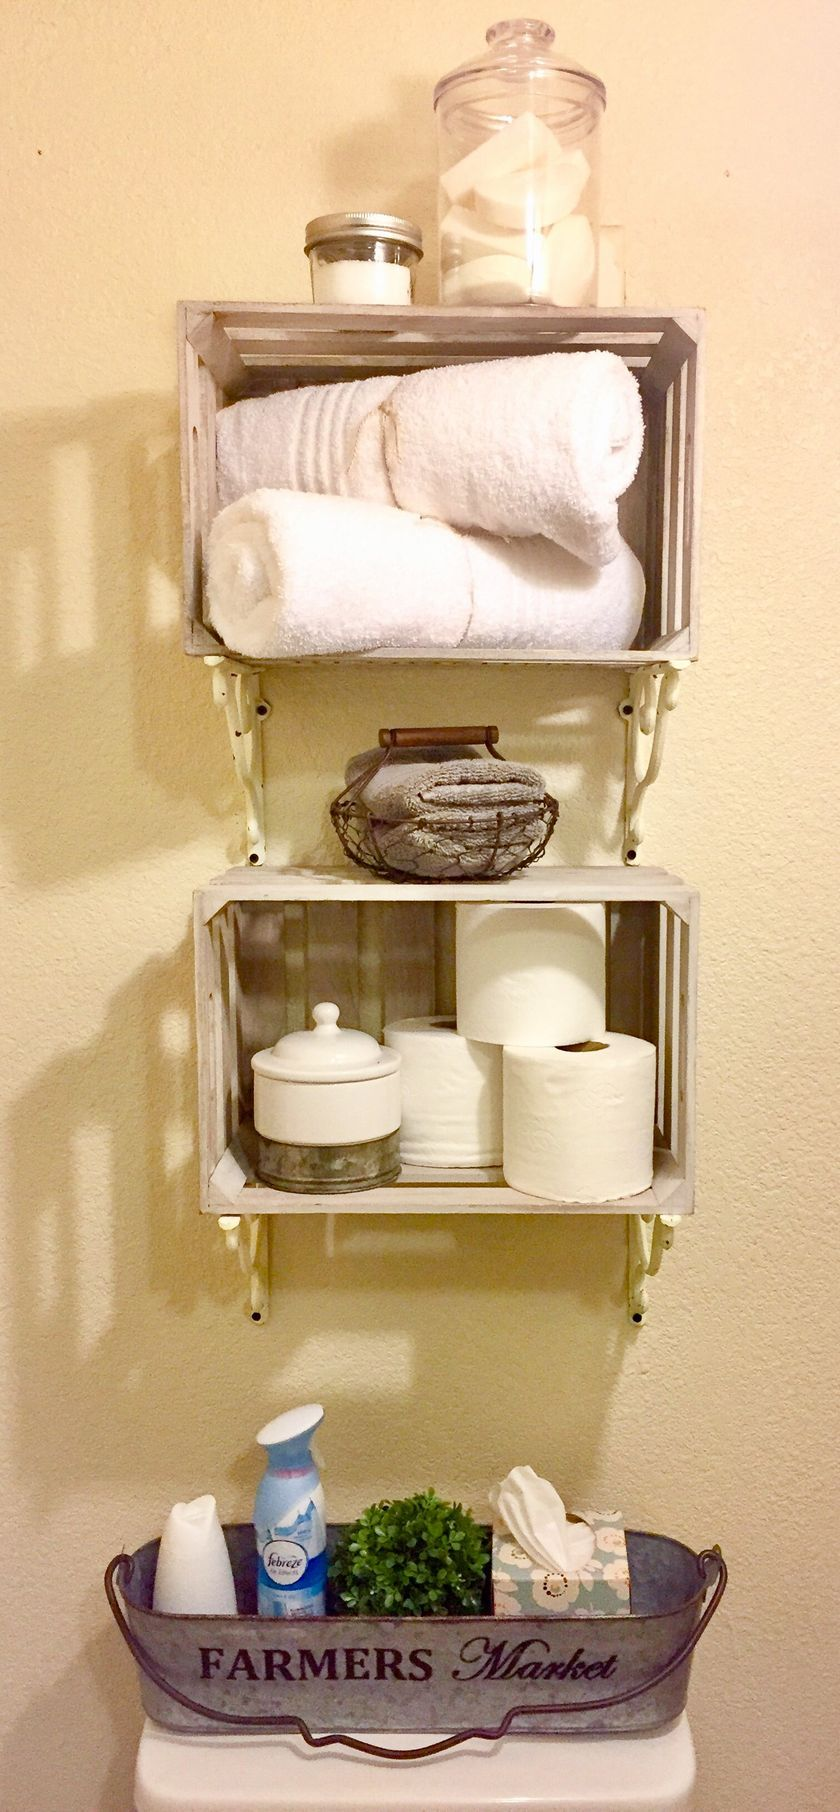 30 Rustic Country Bathroom Shelves Ideas That You Must Try Https Dec